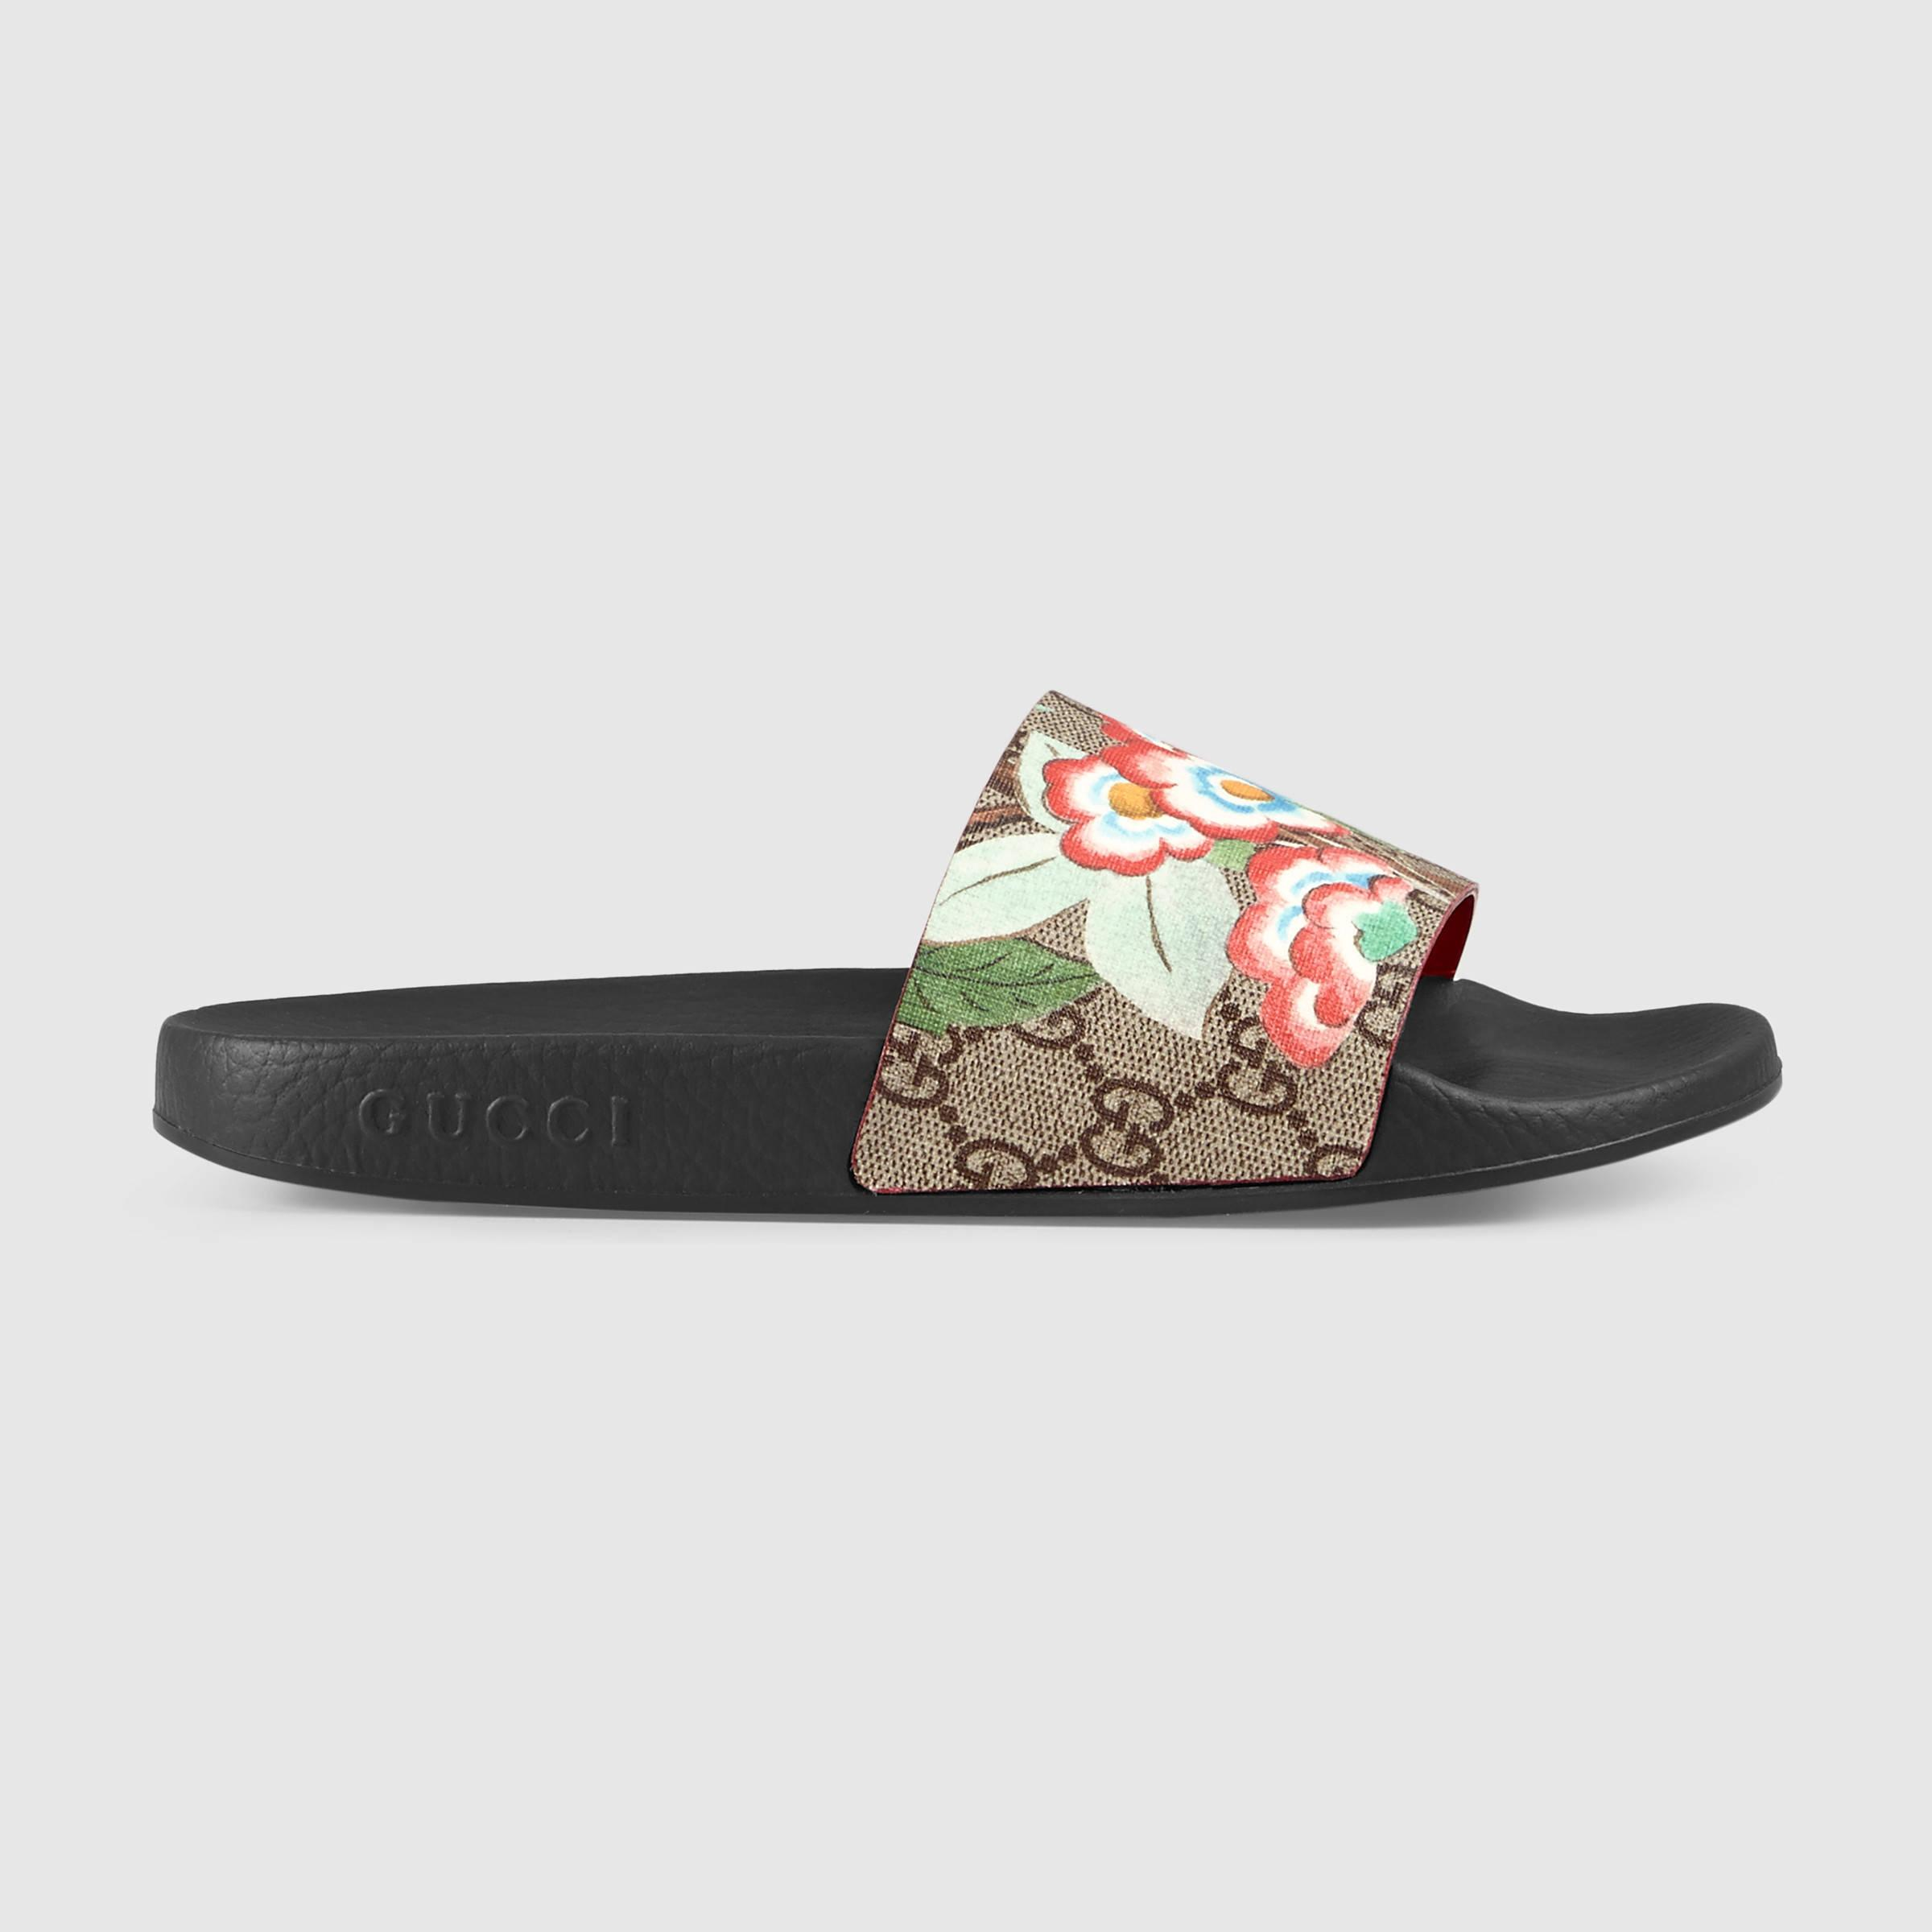 Gucci Slides Dress Shoes